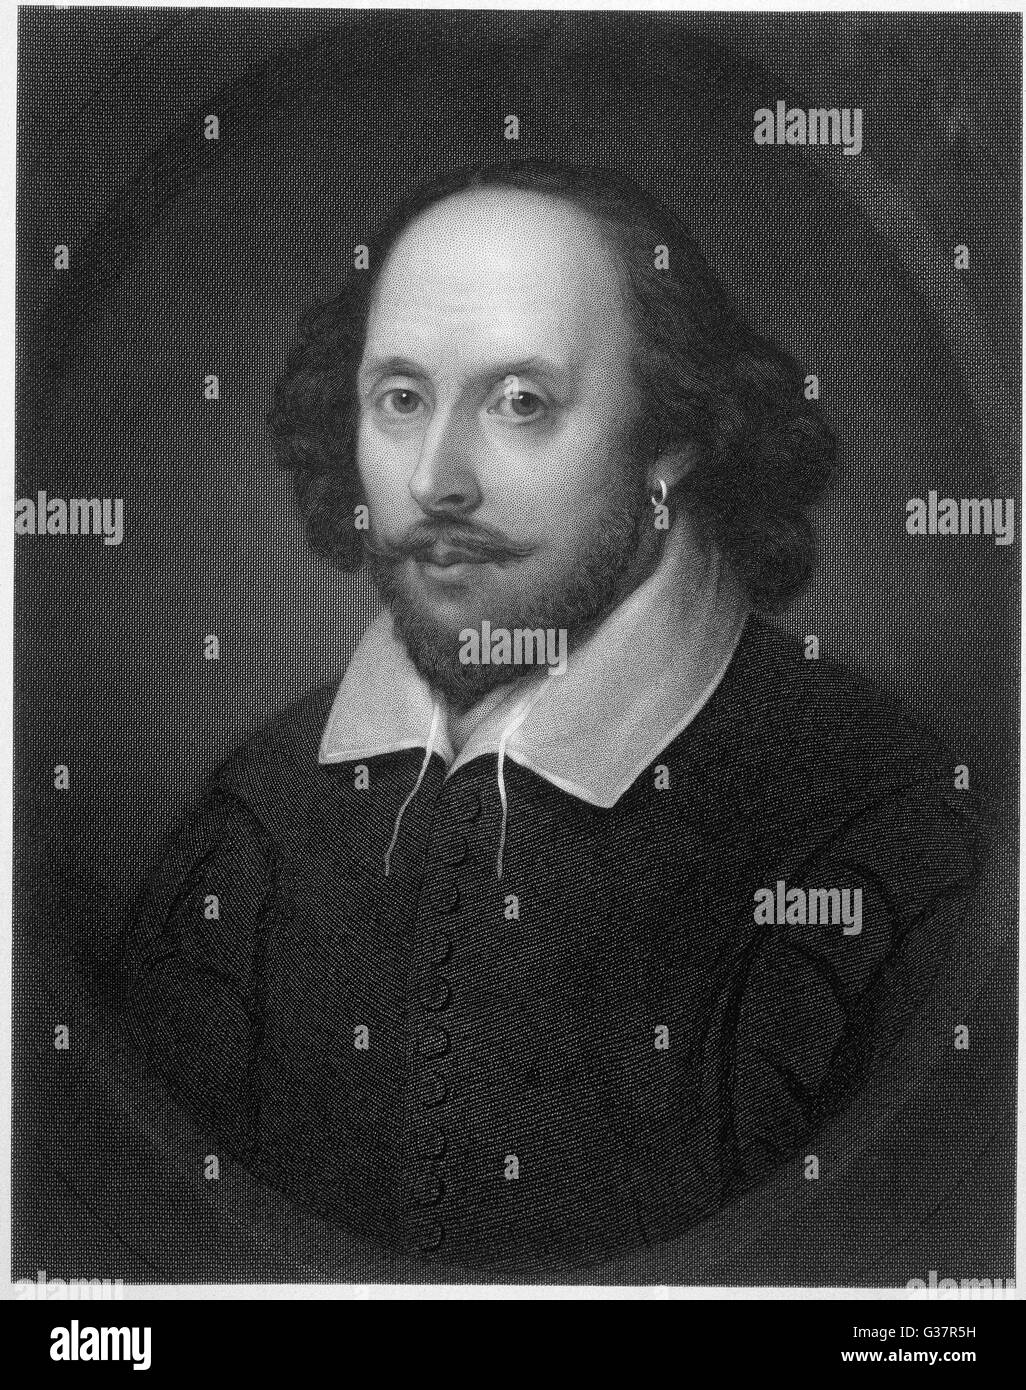 William Shakespeare (1564-1616) Playwright and poet. - Stock Image